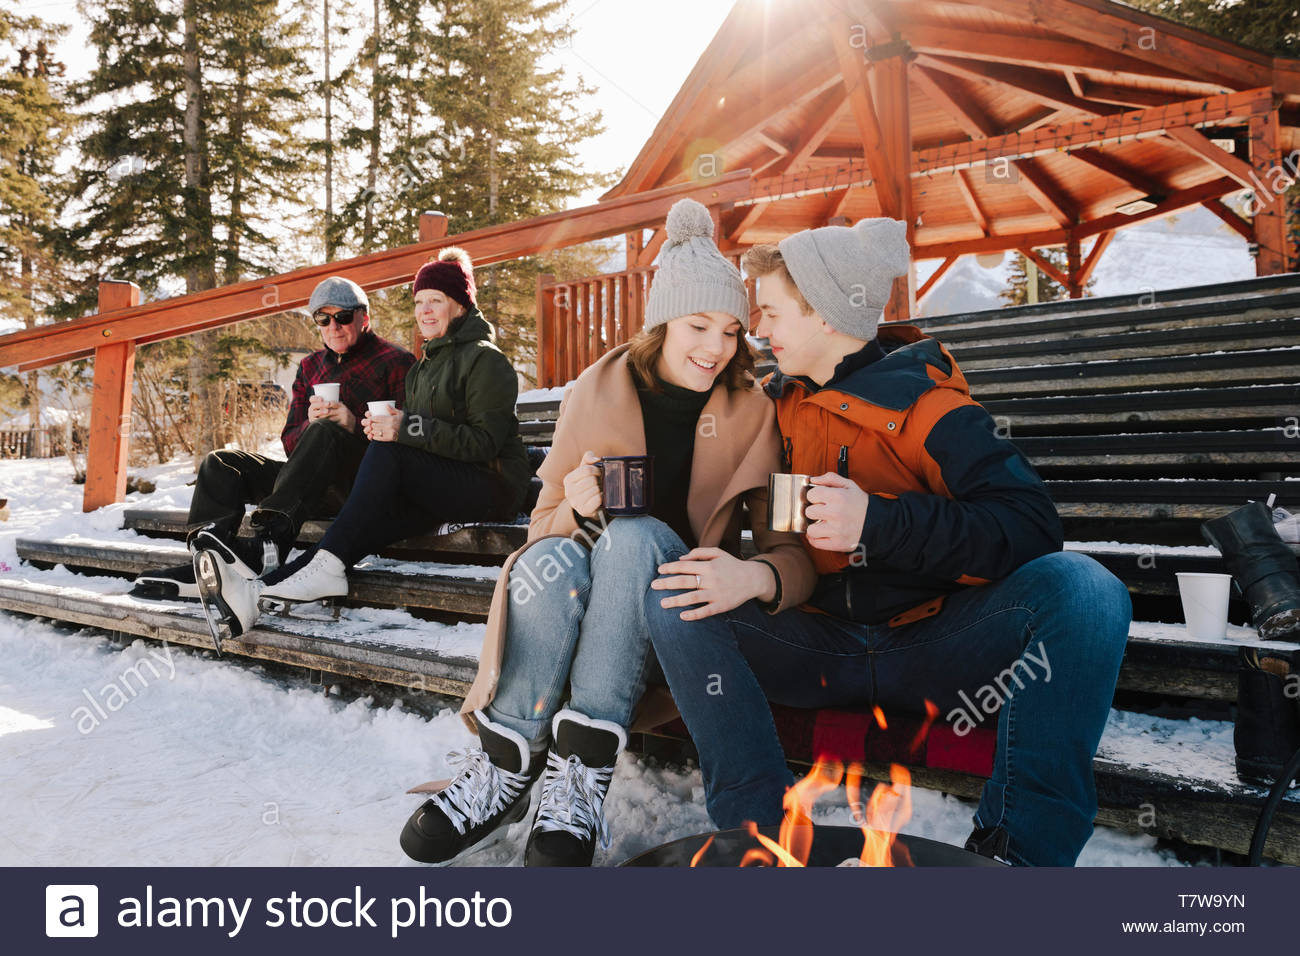 Affectionate teenage couple drinking hot cocoa, taking a break from ice skating Stock Photo